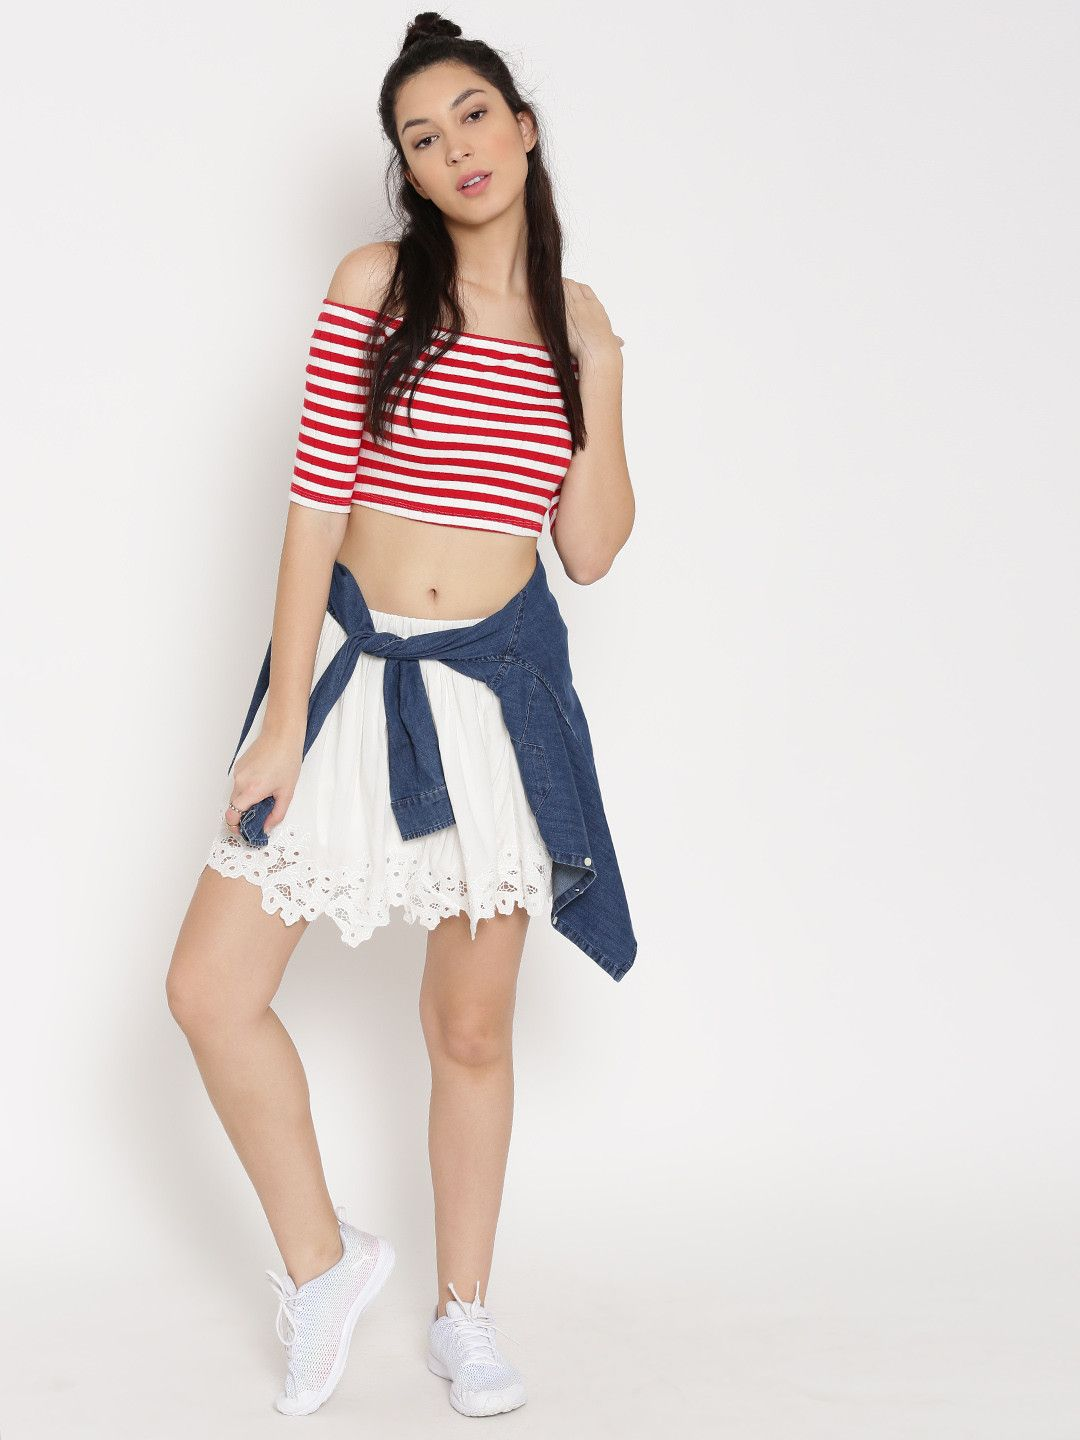 99b4bea5e9b654 FOREVER 21 Women Red & White Striped Off Shoulder Crop Top #striped #red # white